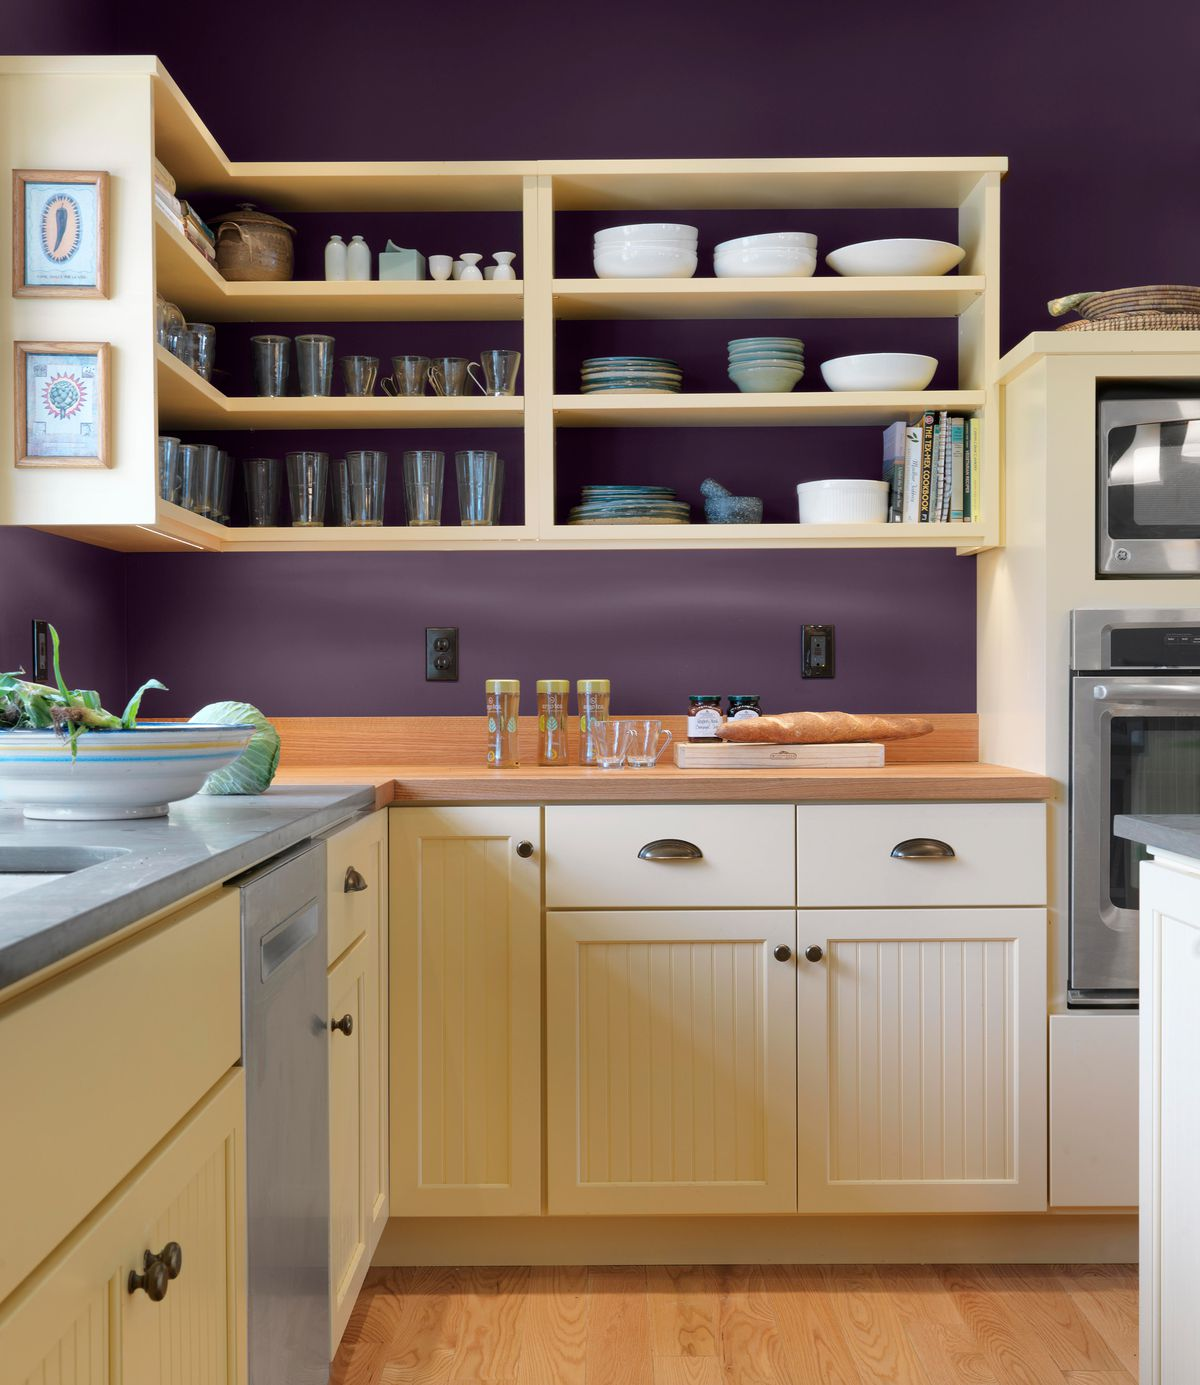 Purple painted kitchen with yellow cabinets.